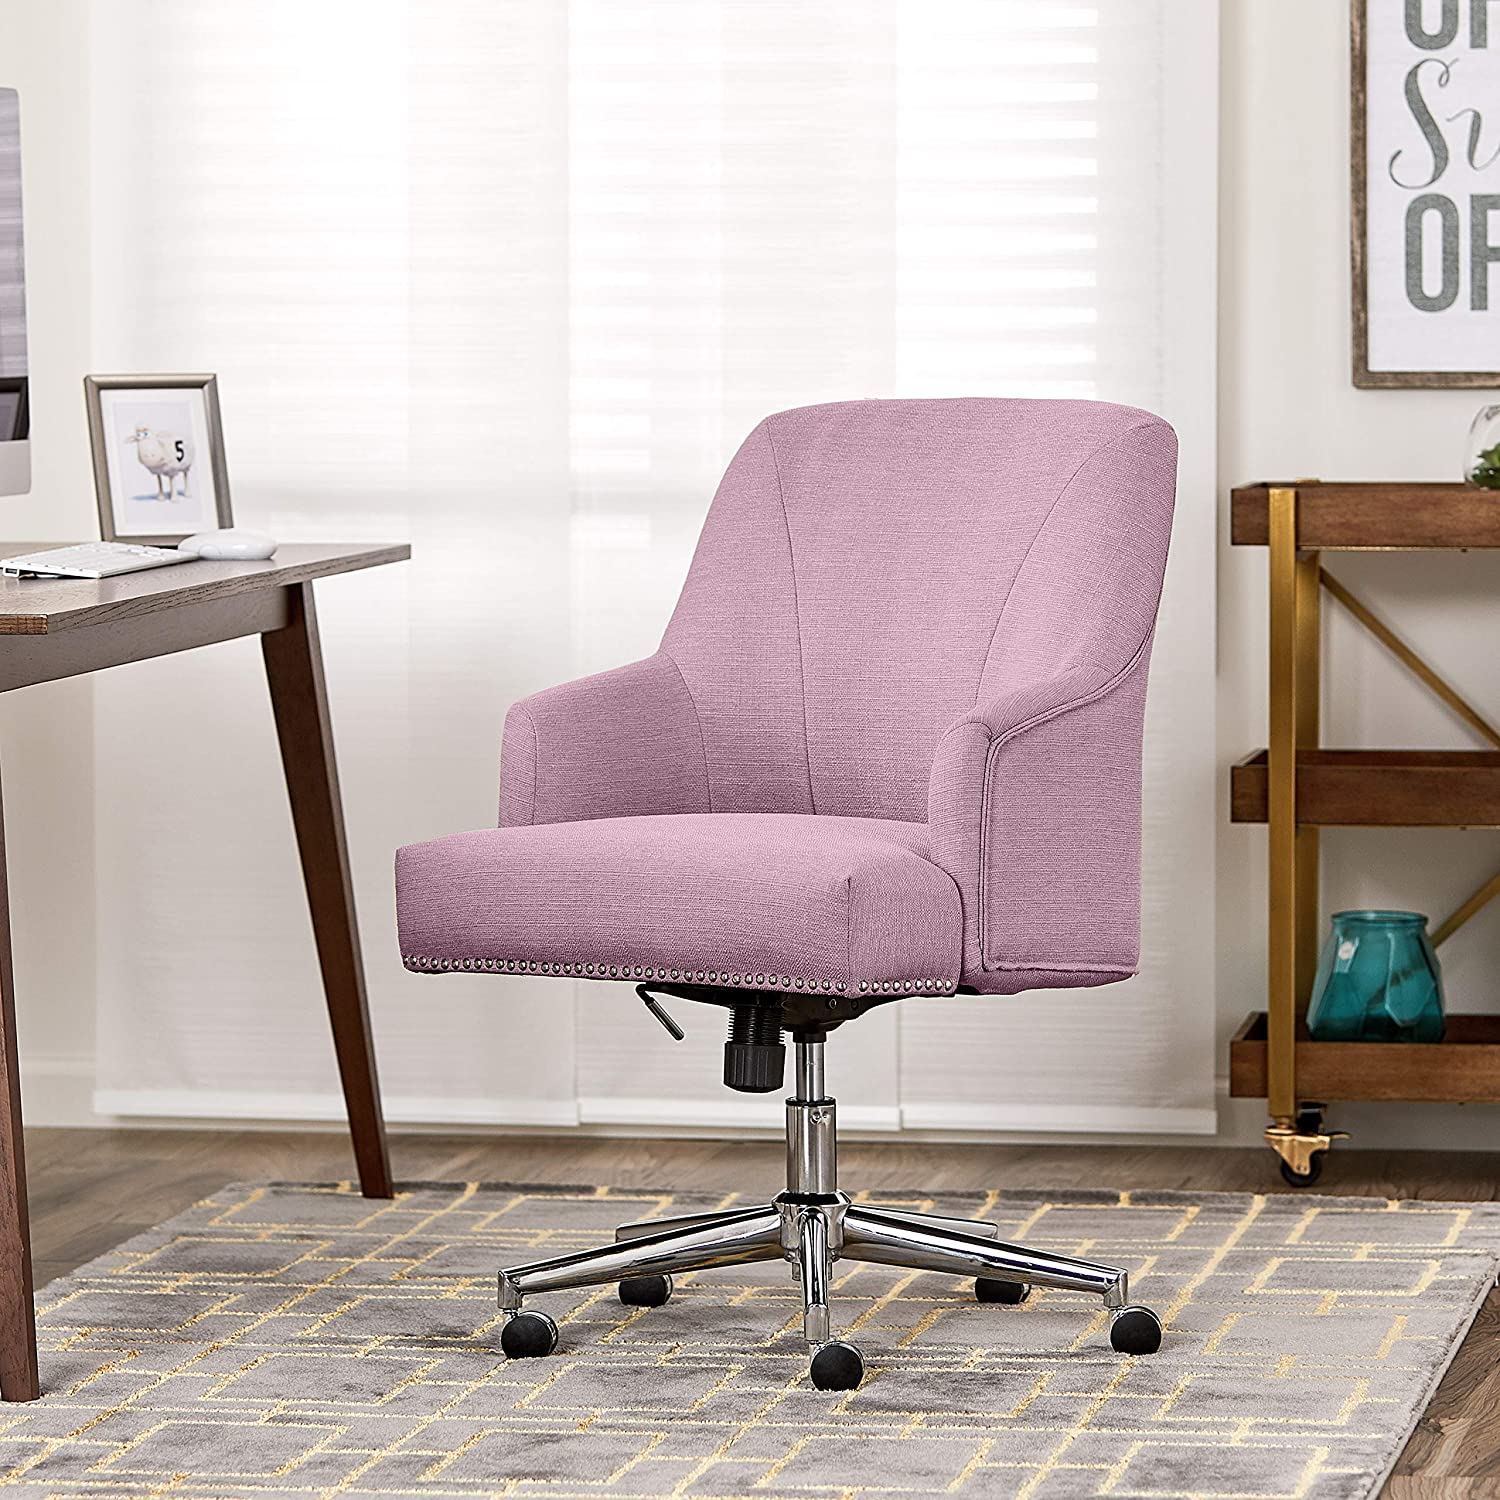 Serta Style Leighton Home Office Chair, Twill Fabric, Lilac